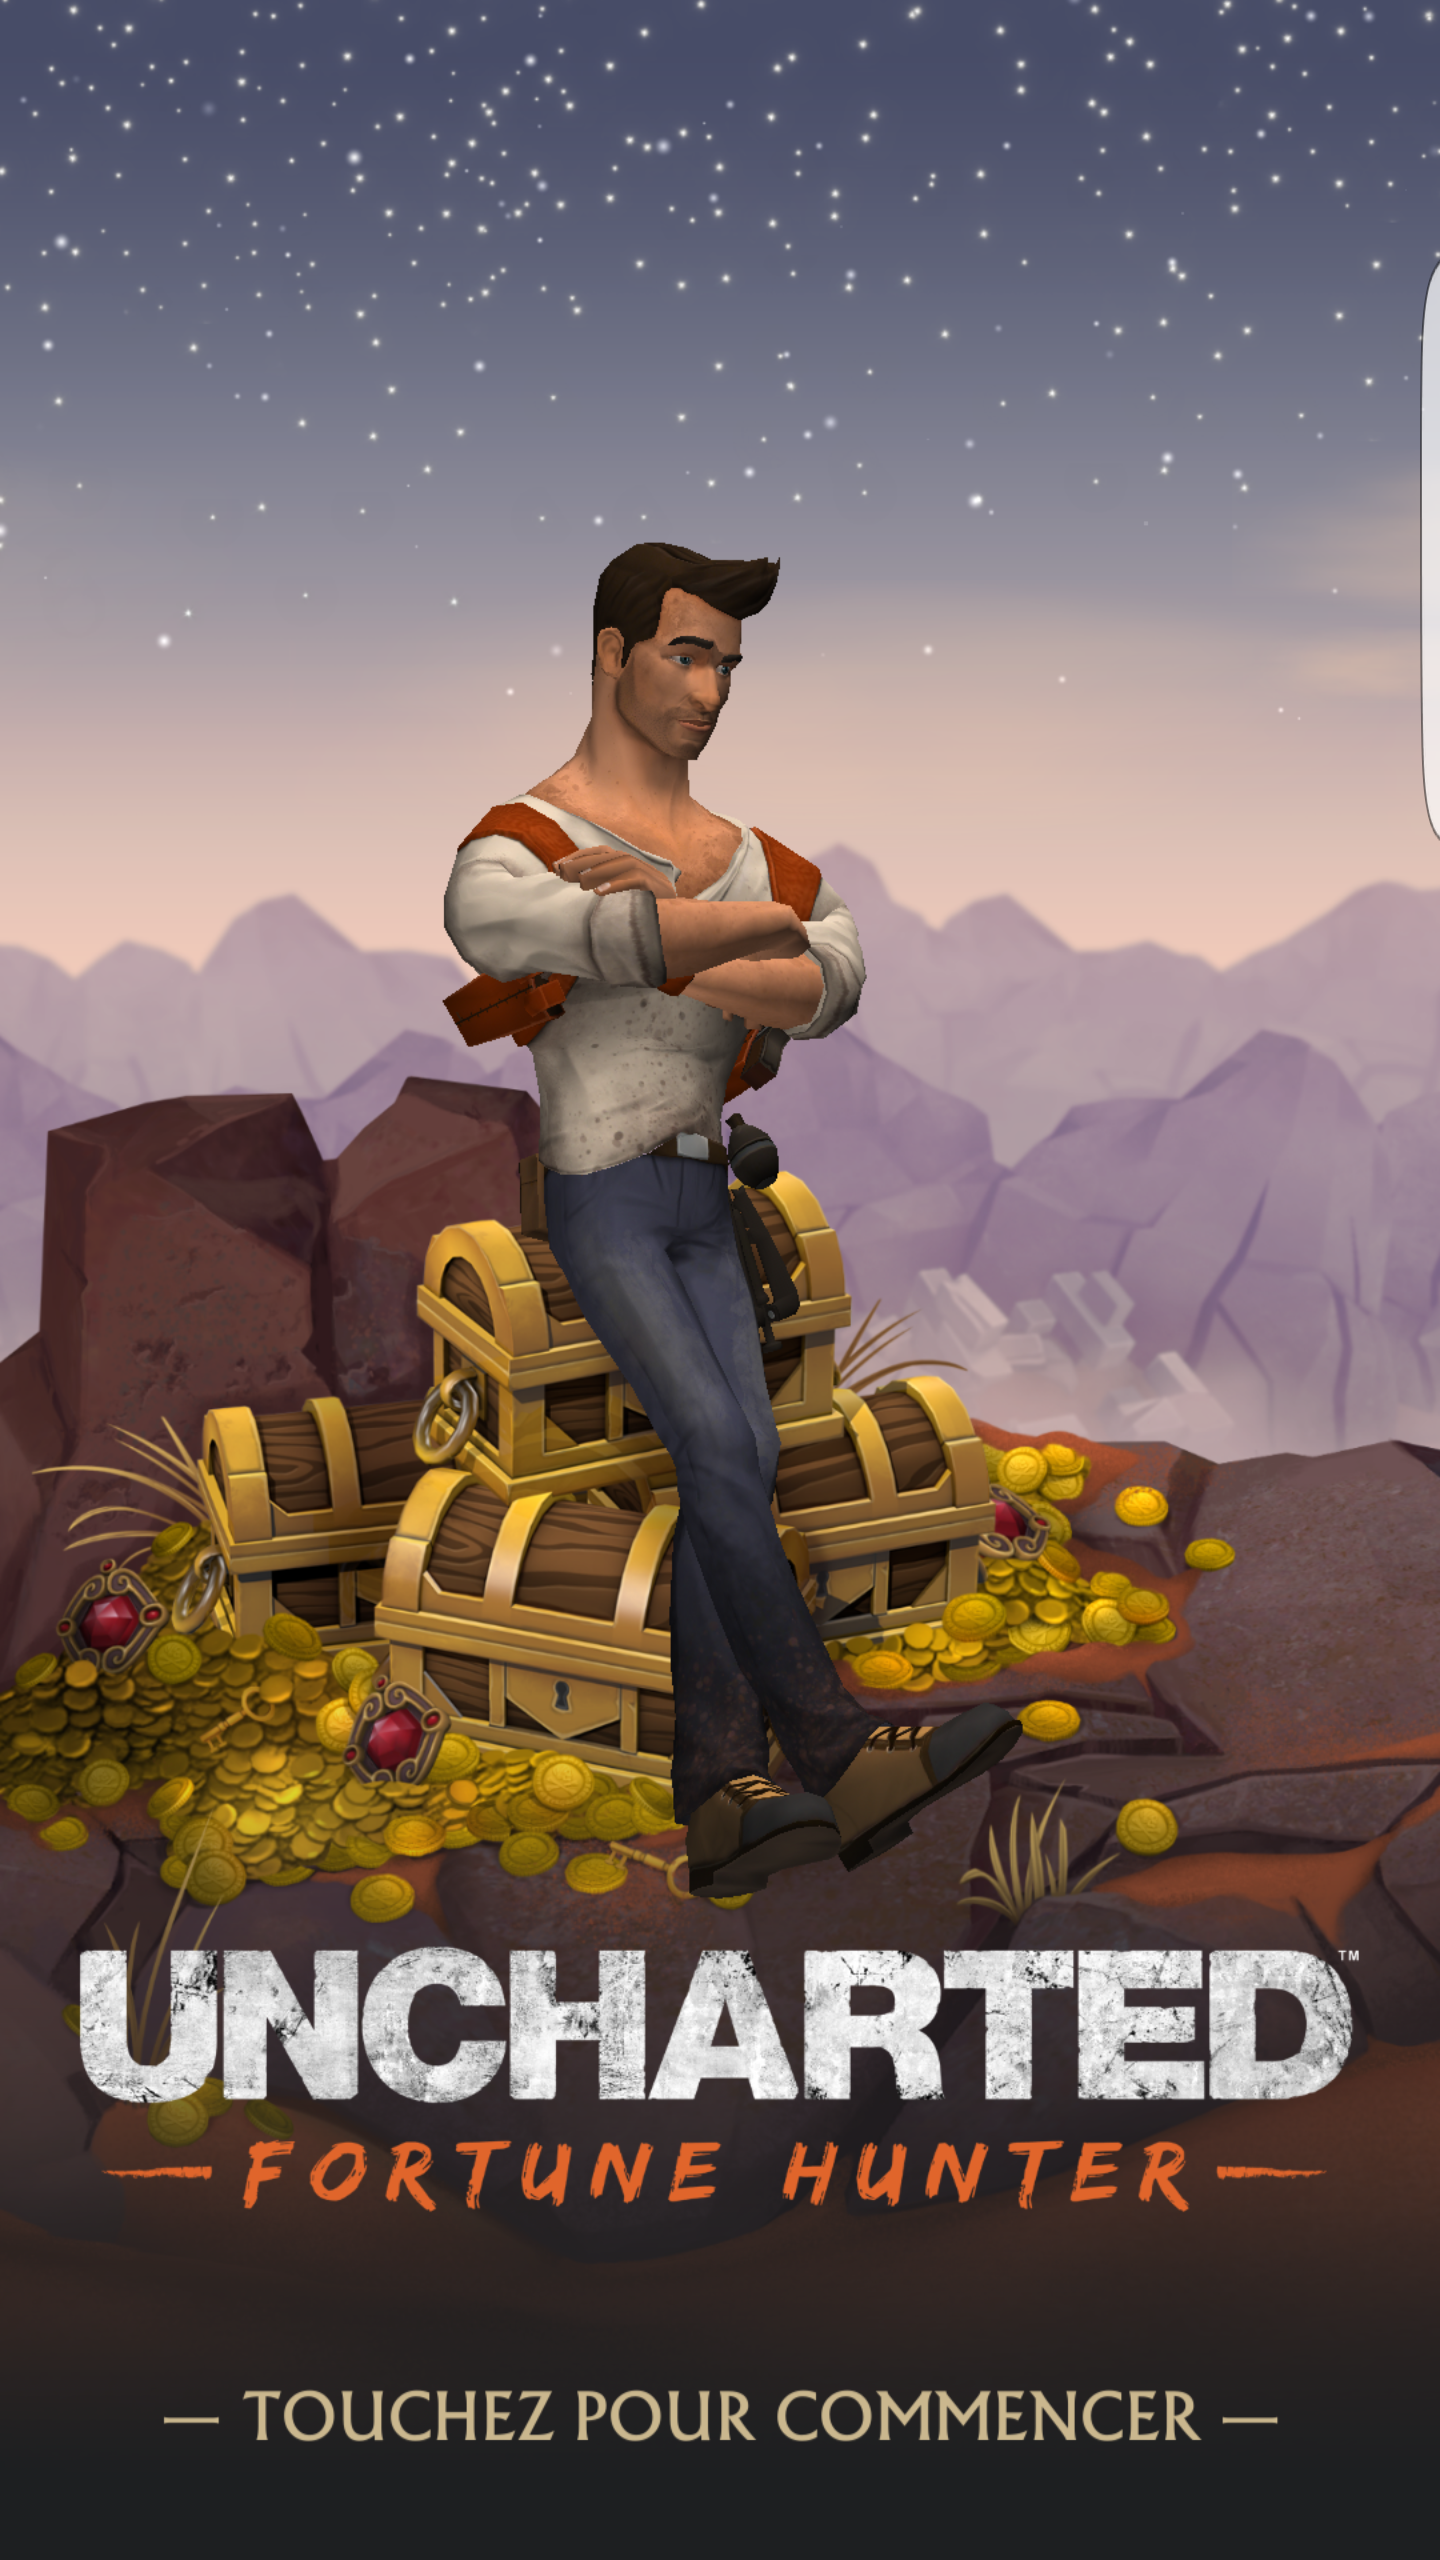 Uncharted Fortune Hunter-1